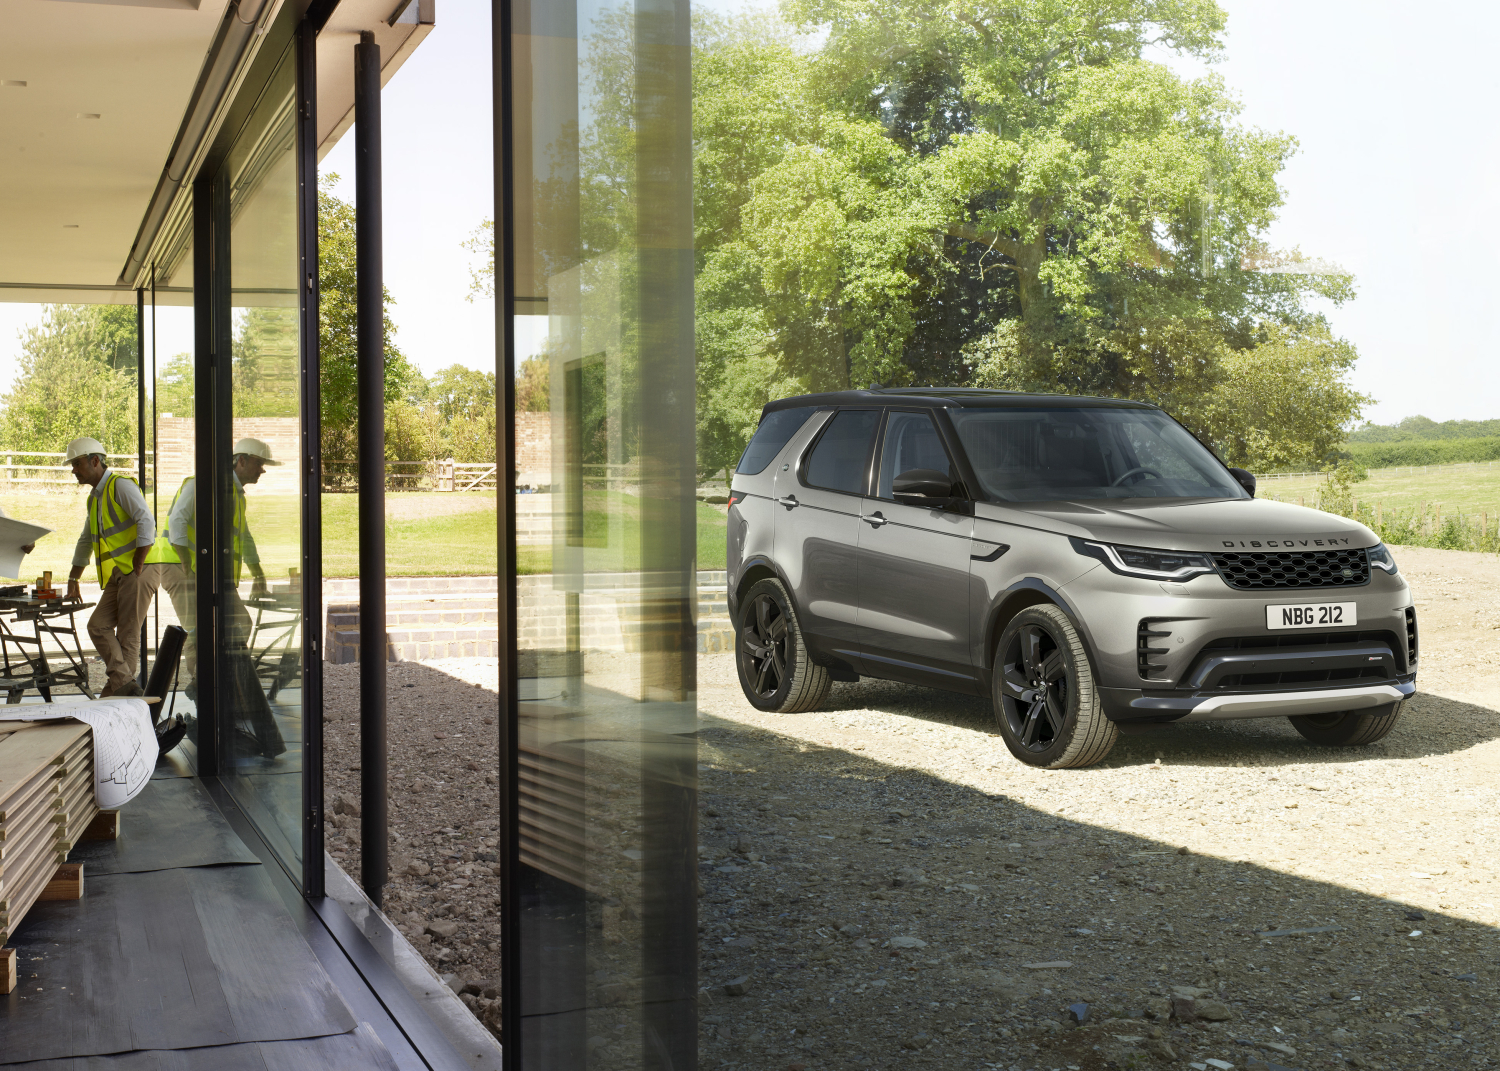 NEW DISCOVERY COMMERCIAL R-DYNAMIC